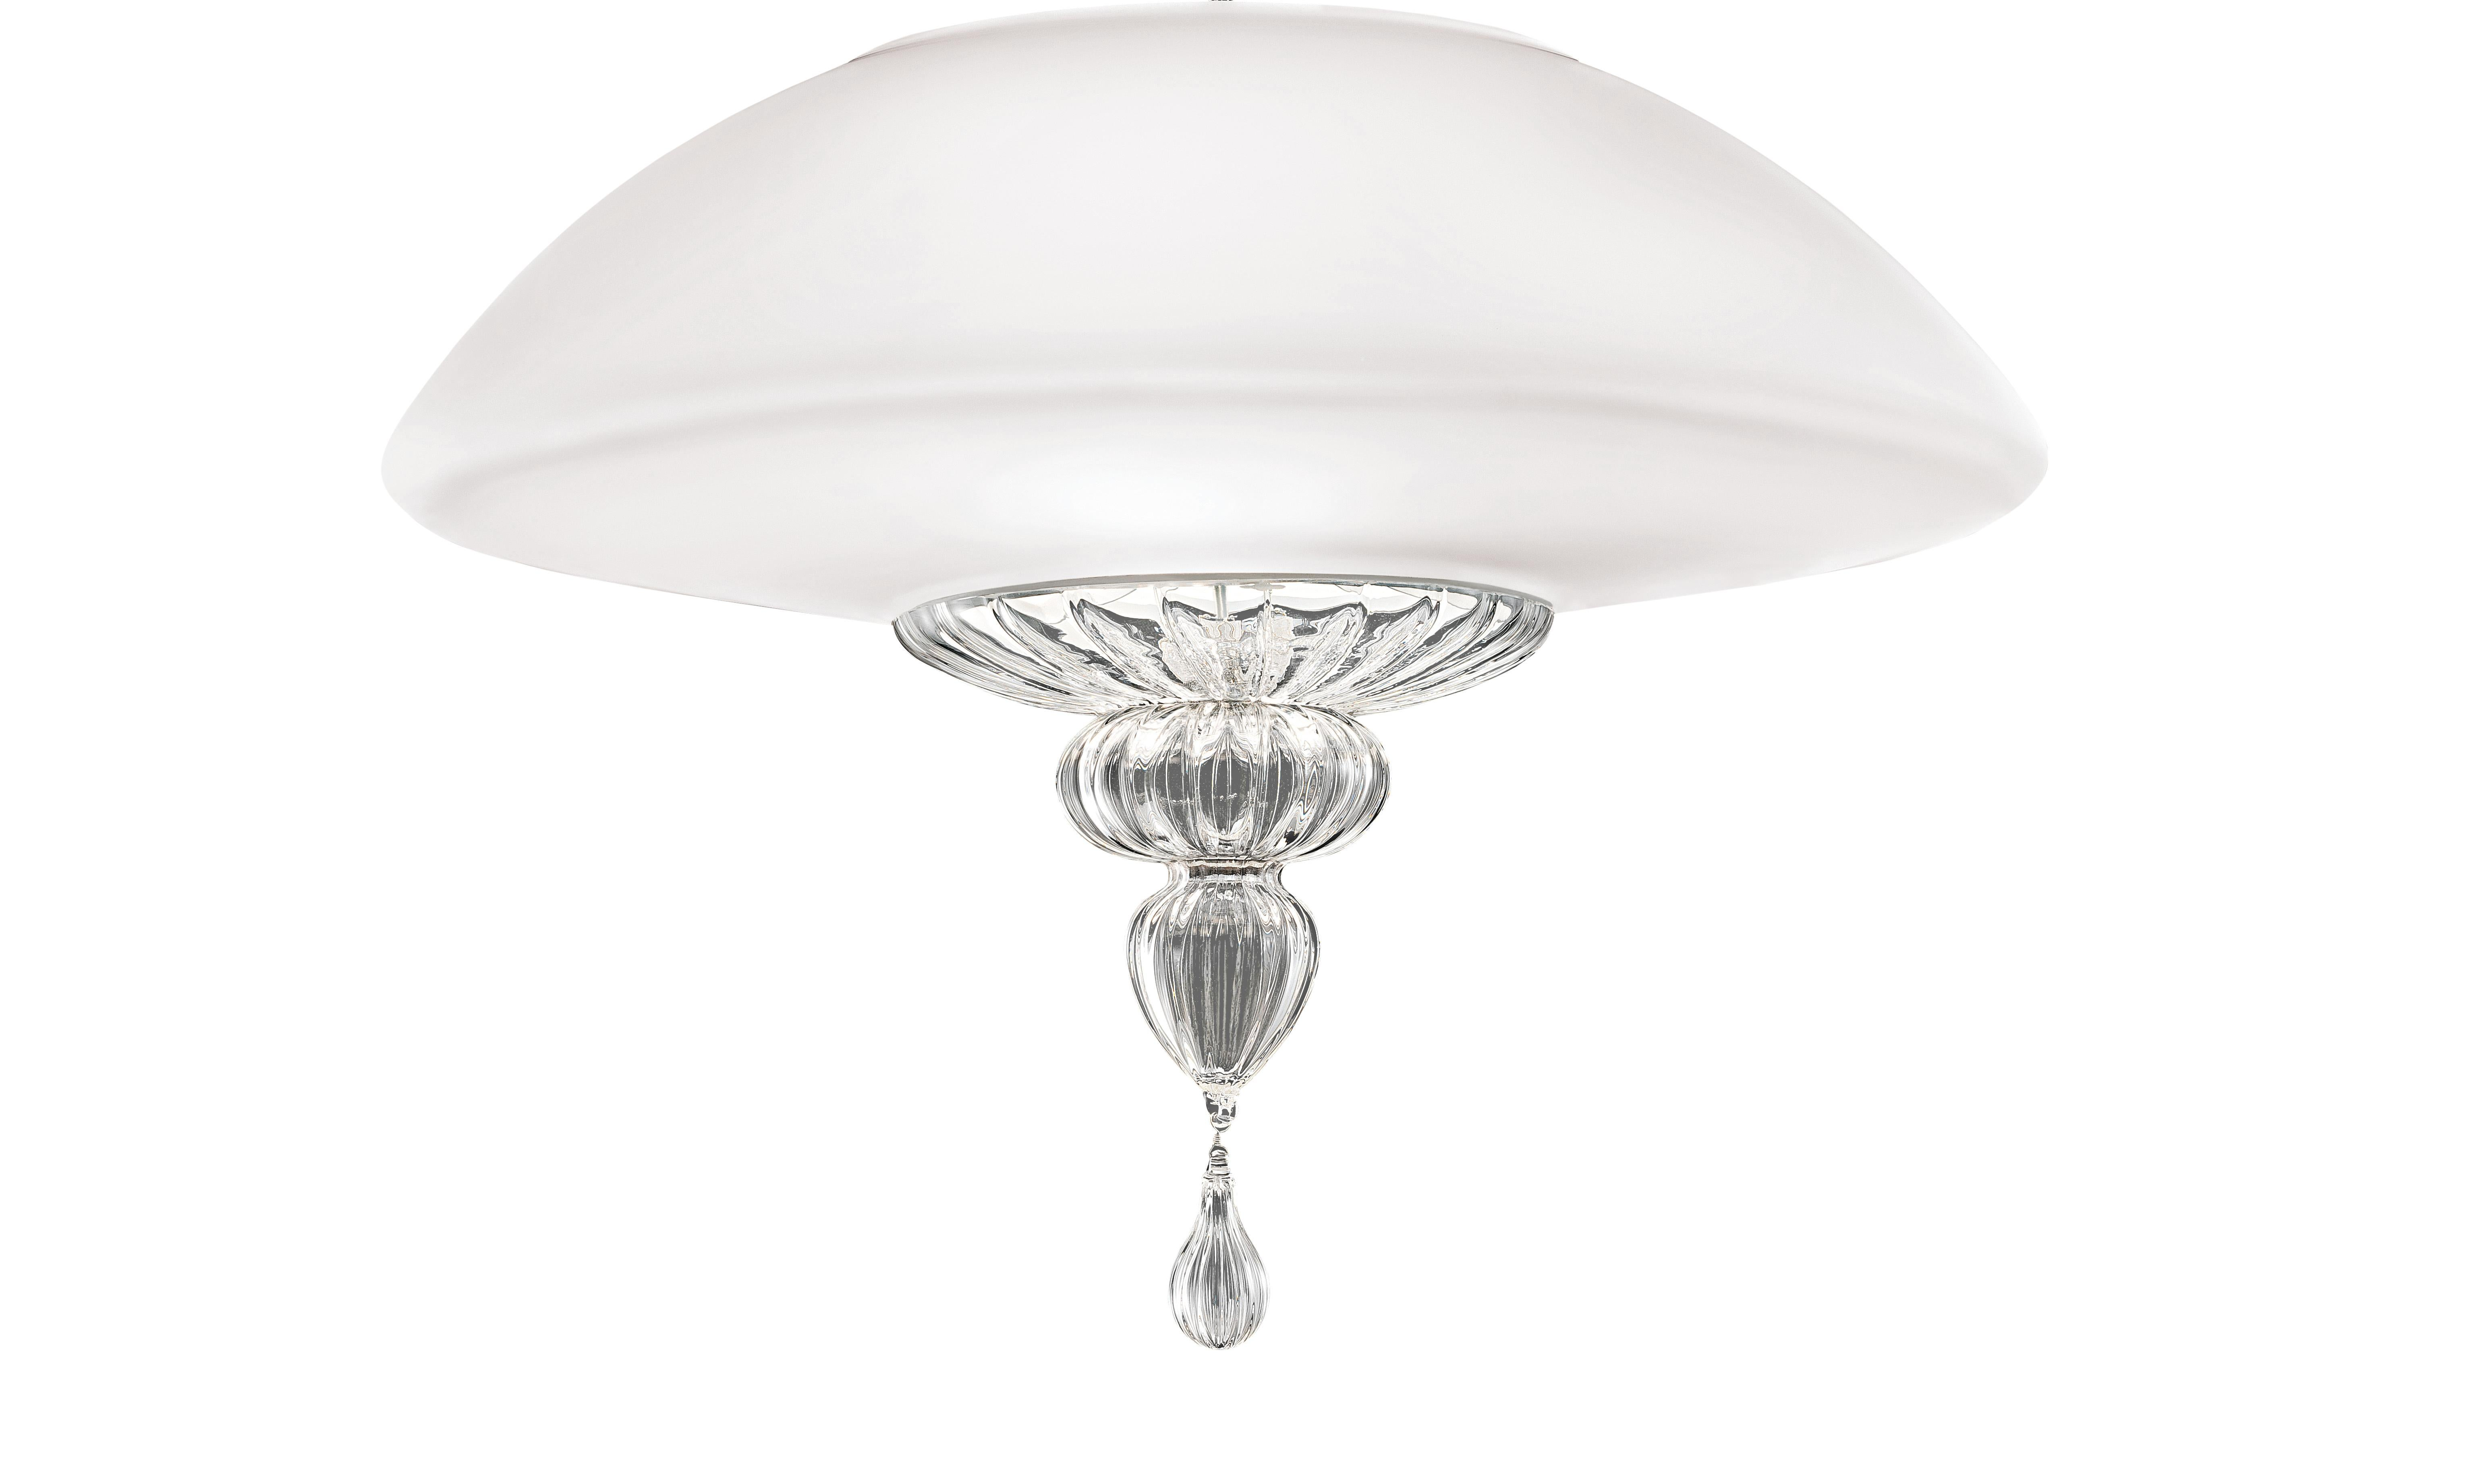 Topkapi 7093 60 Ceiling Lamp in Glass, by Daniela Puppa from Barovier&Toso